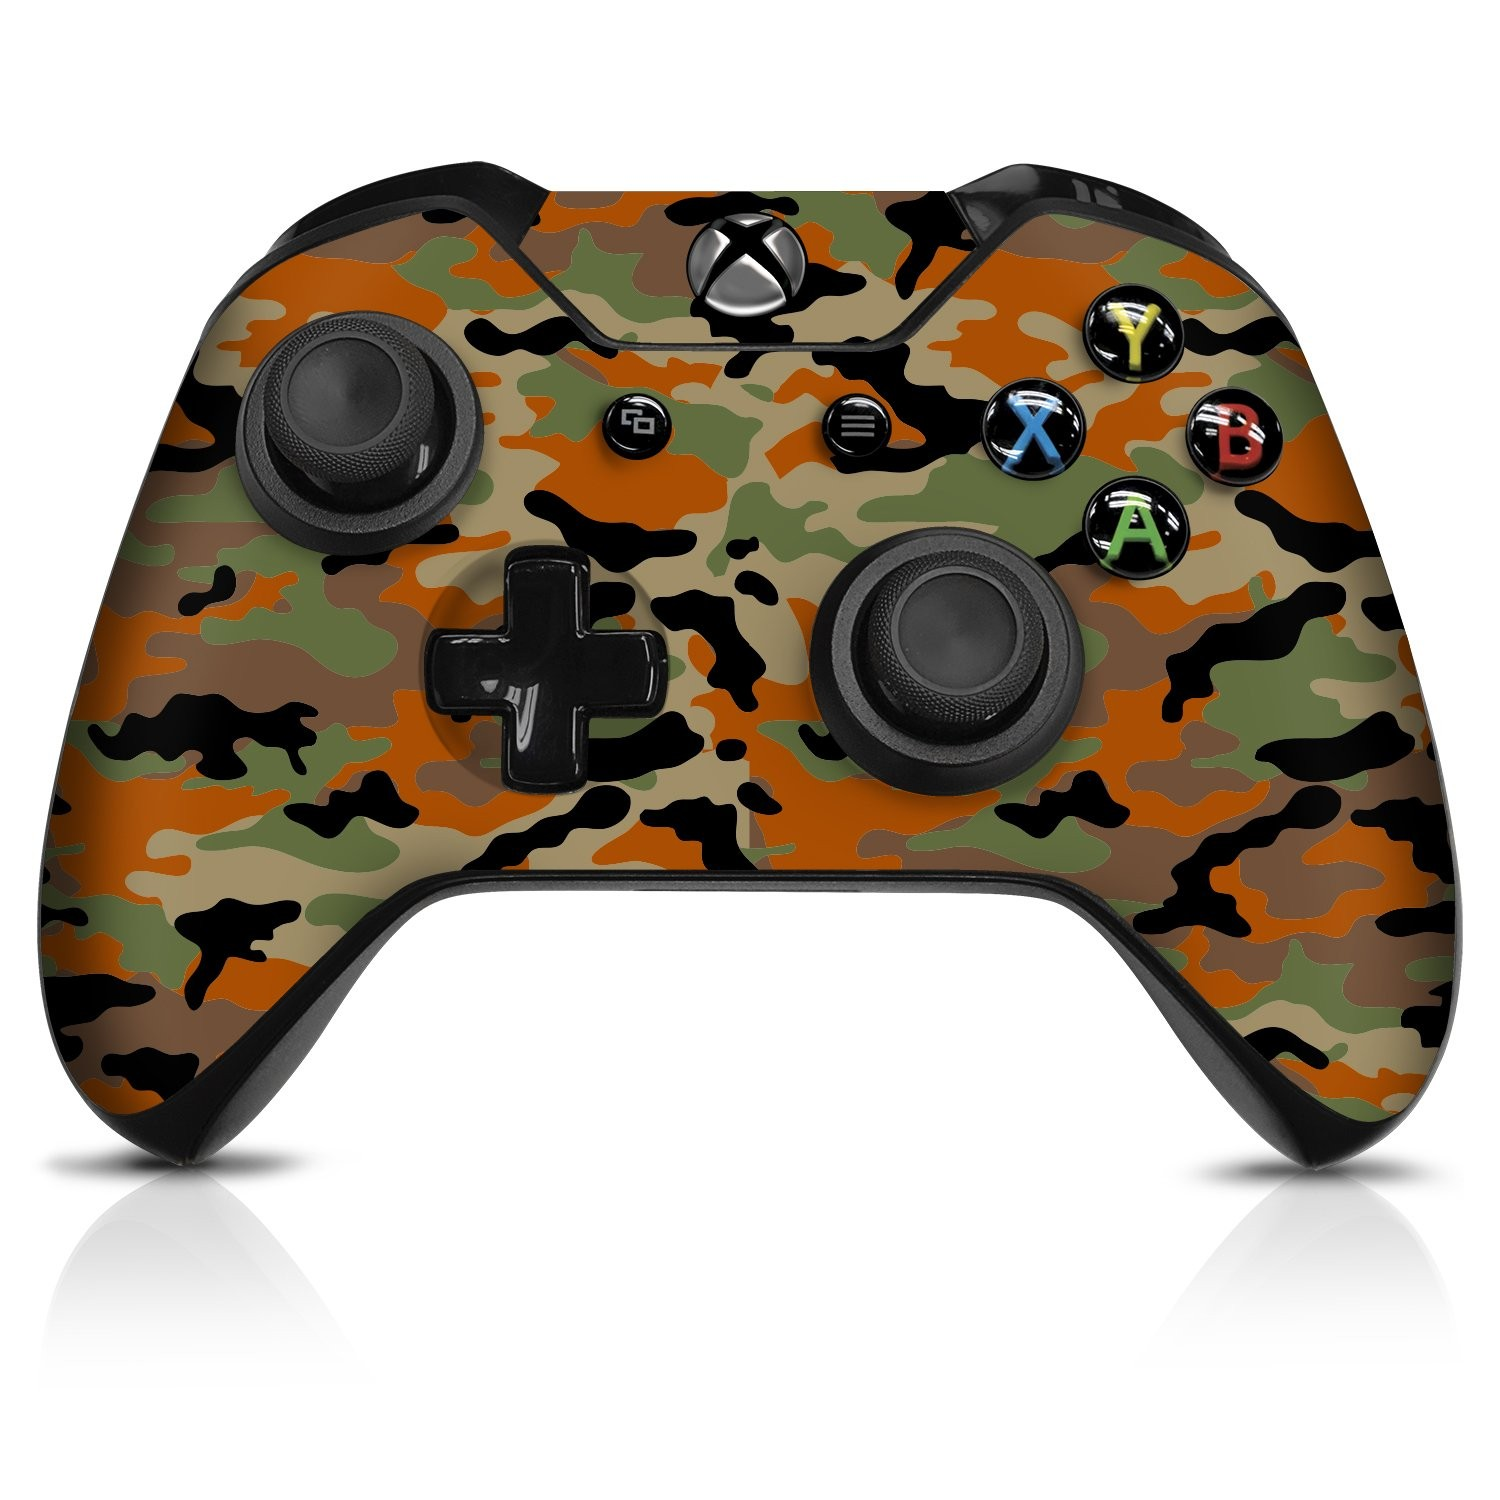 Flecktarn Camo  Xbox One Controller Skin - Officially Licensed by Xbox - Controller Gear